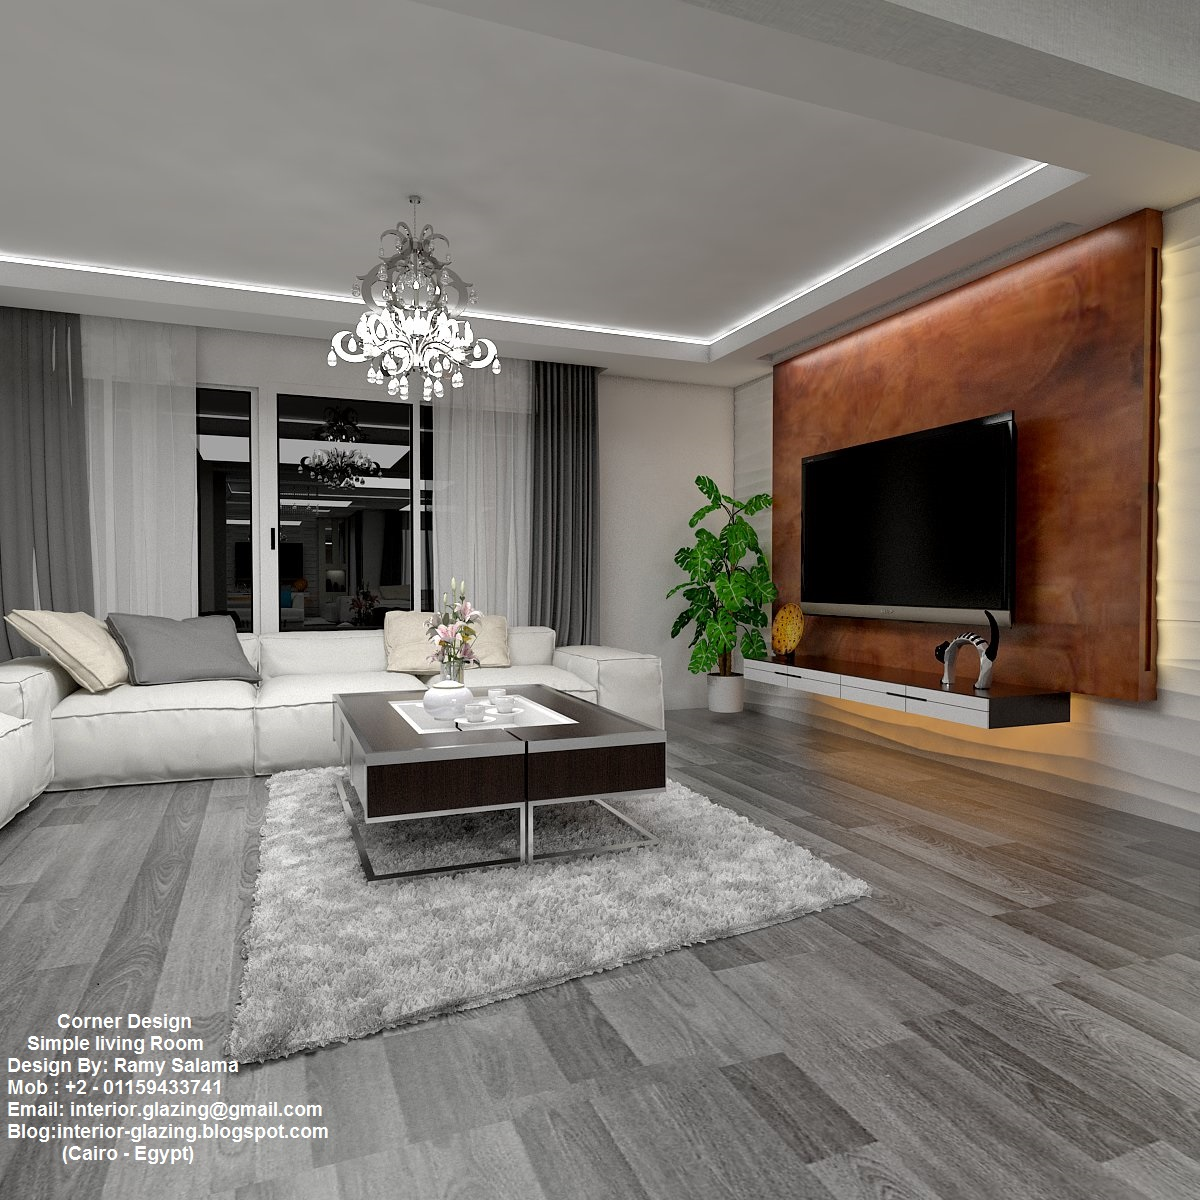 Corner design simple living room design by ramy salama for Simple living style